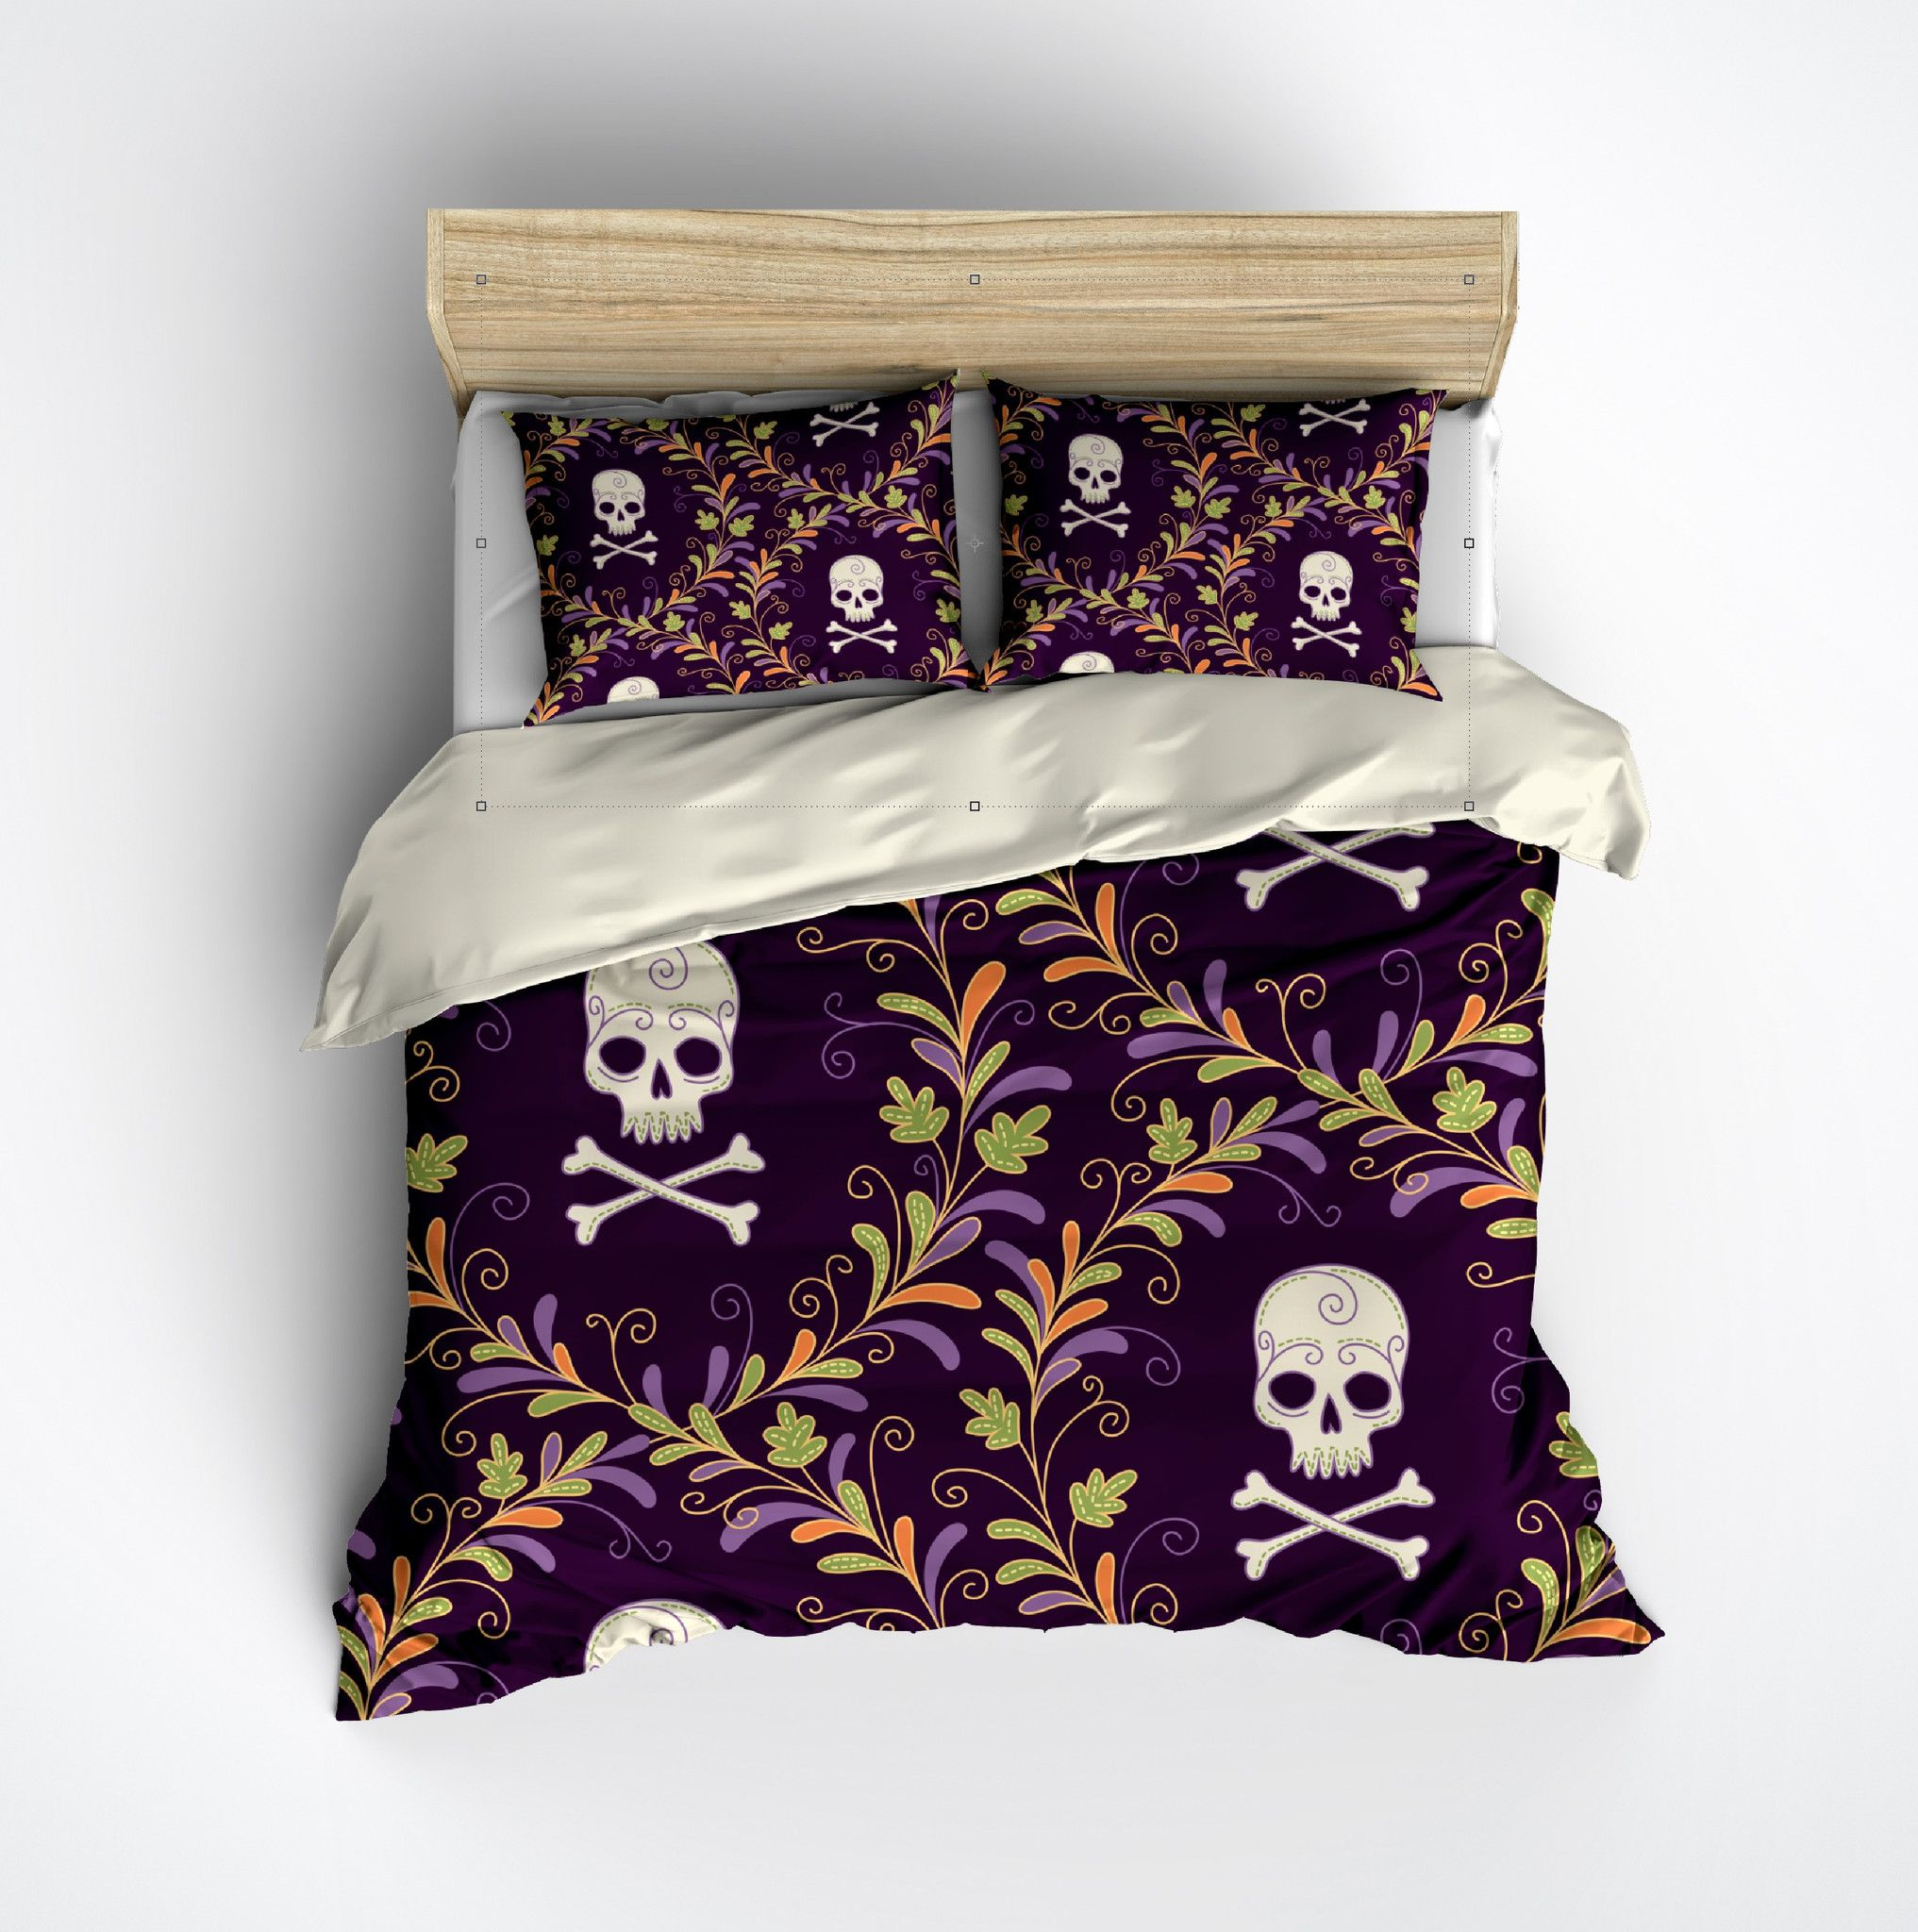 Purple Wreath Skull Bedding CREAM Duvet bedding sets